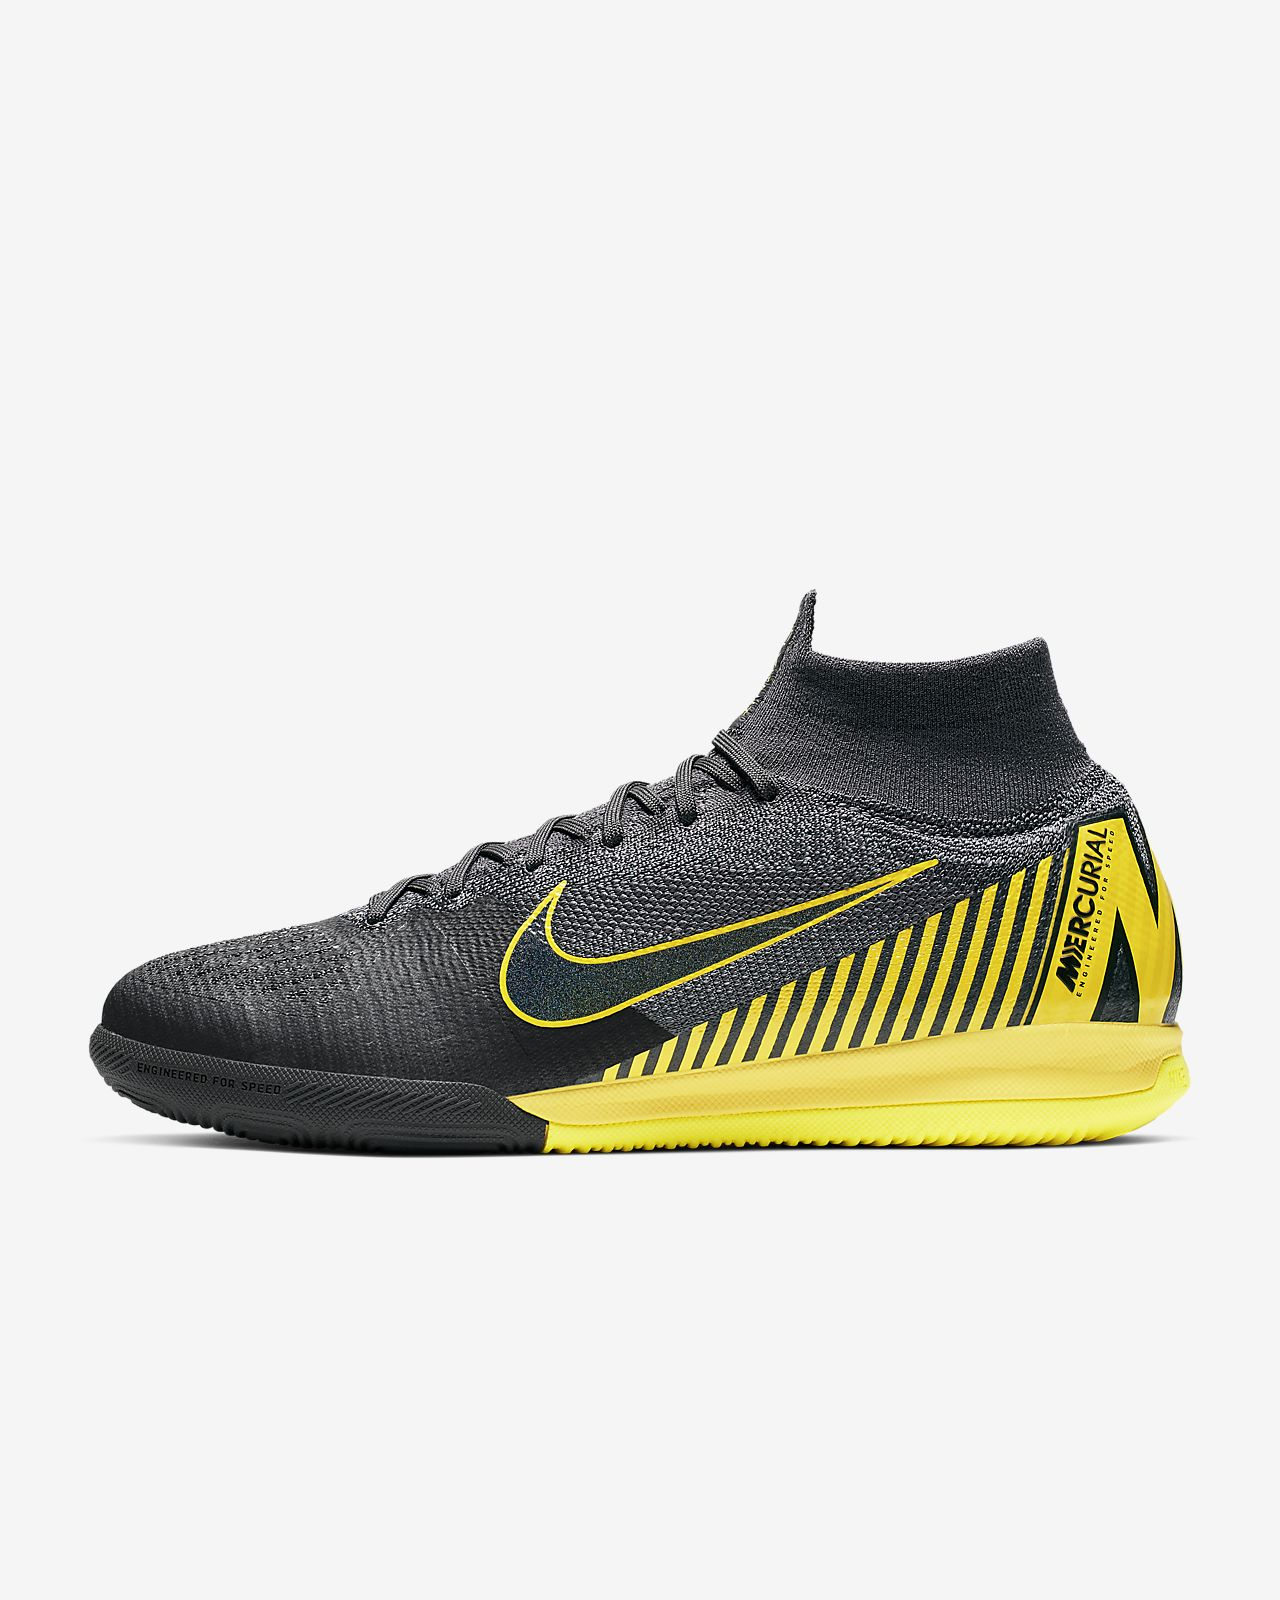 Nike SuperflyX 6 Elite IC Game Over Men's Indoor/Court Football Boot